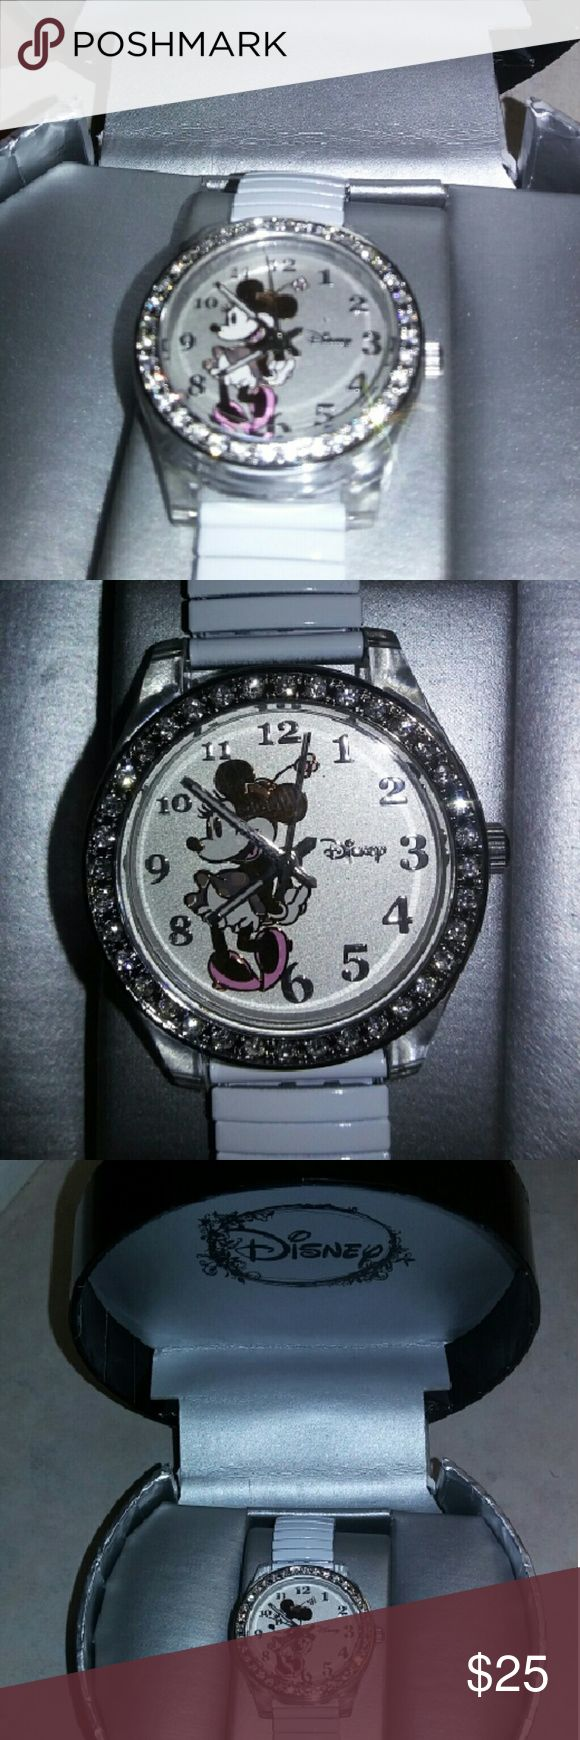 Minnie mouse watch New in box, never used Minnie mouse watch make me a offer I can't refuse, get Christmas gift for a Disney lover Disney Accessories Watches